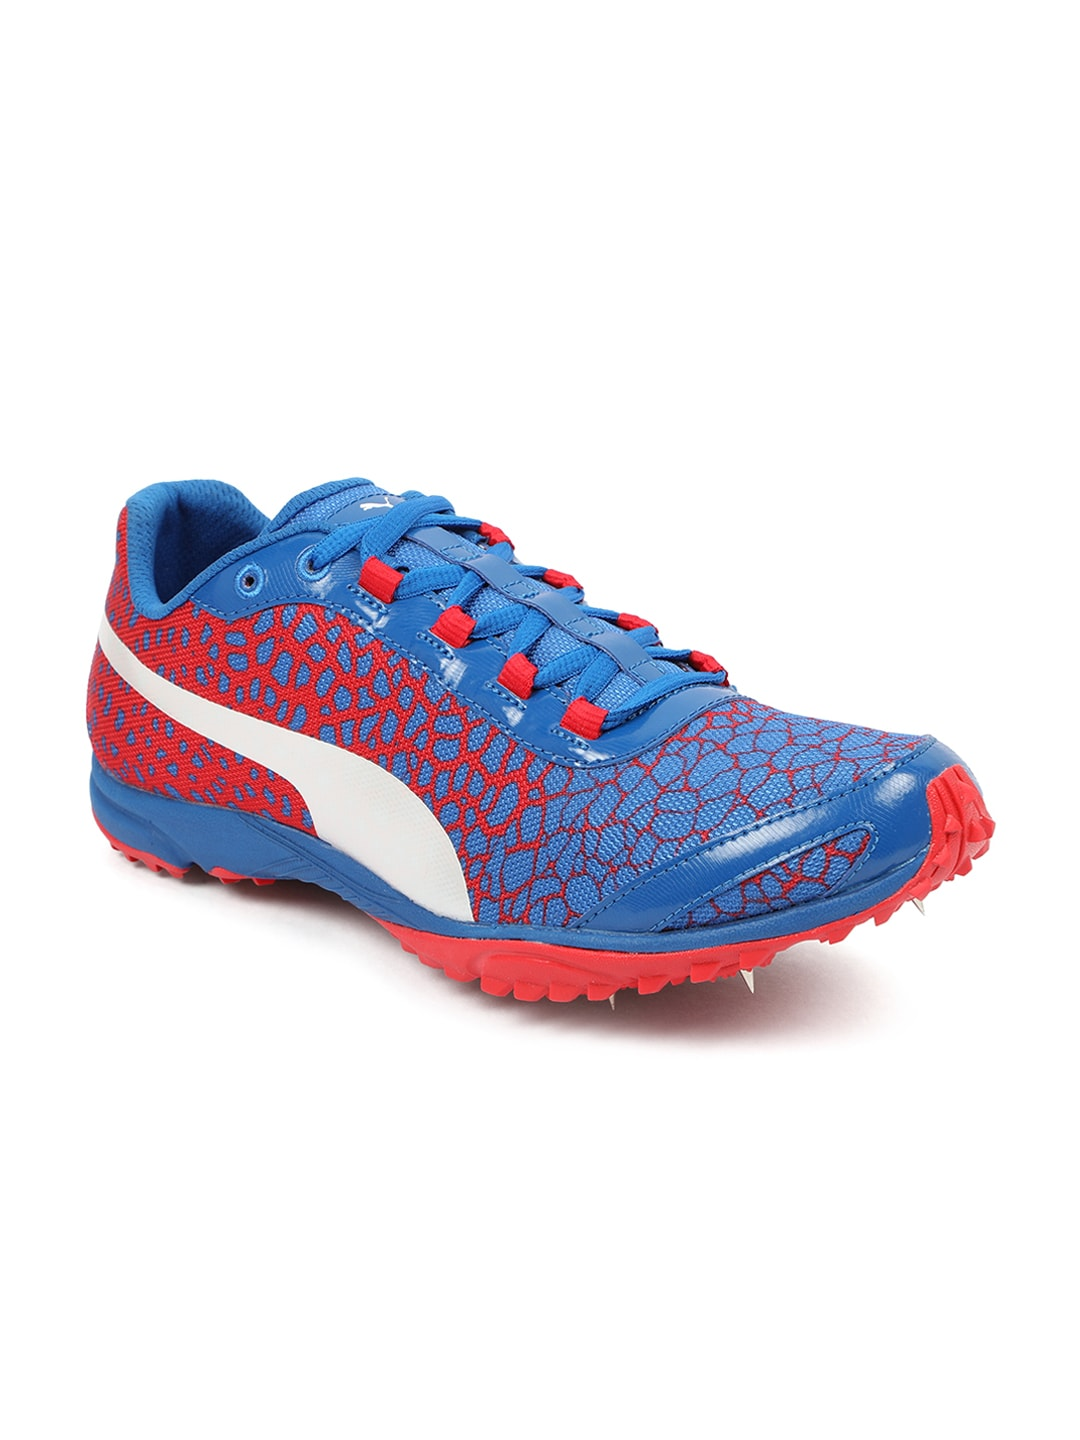 e1ff322decc Puma Running Shoes